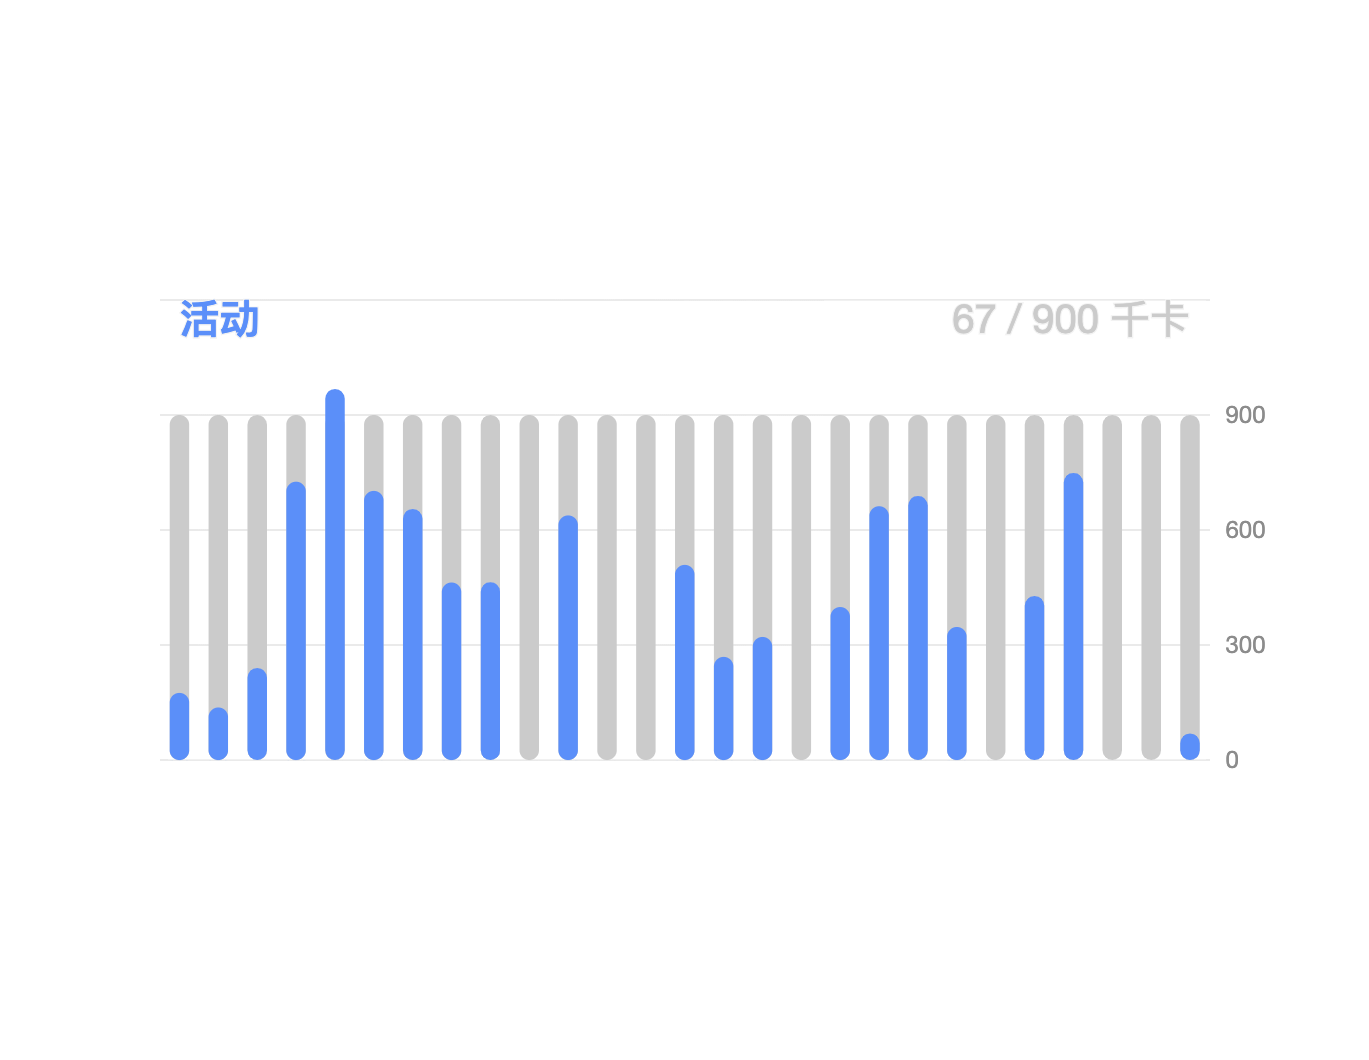 rounded column chart